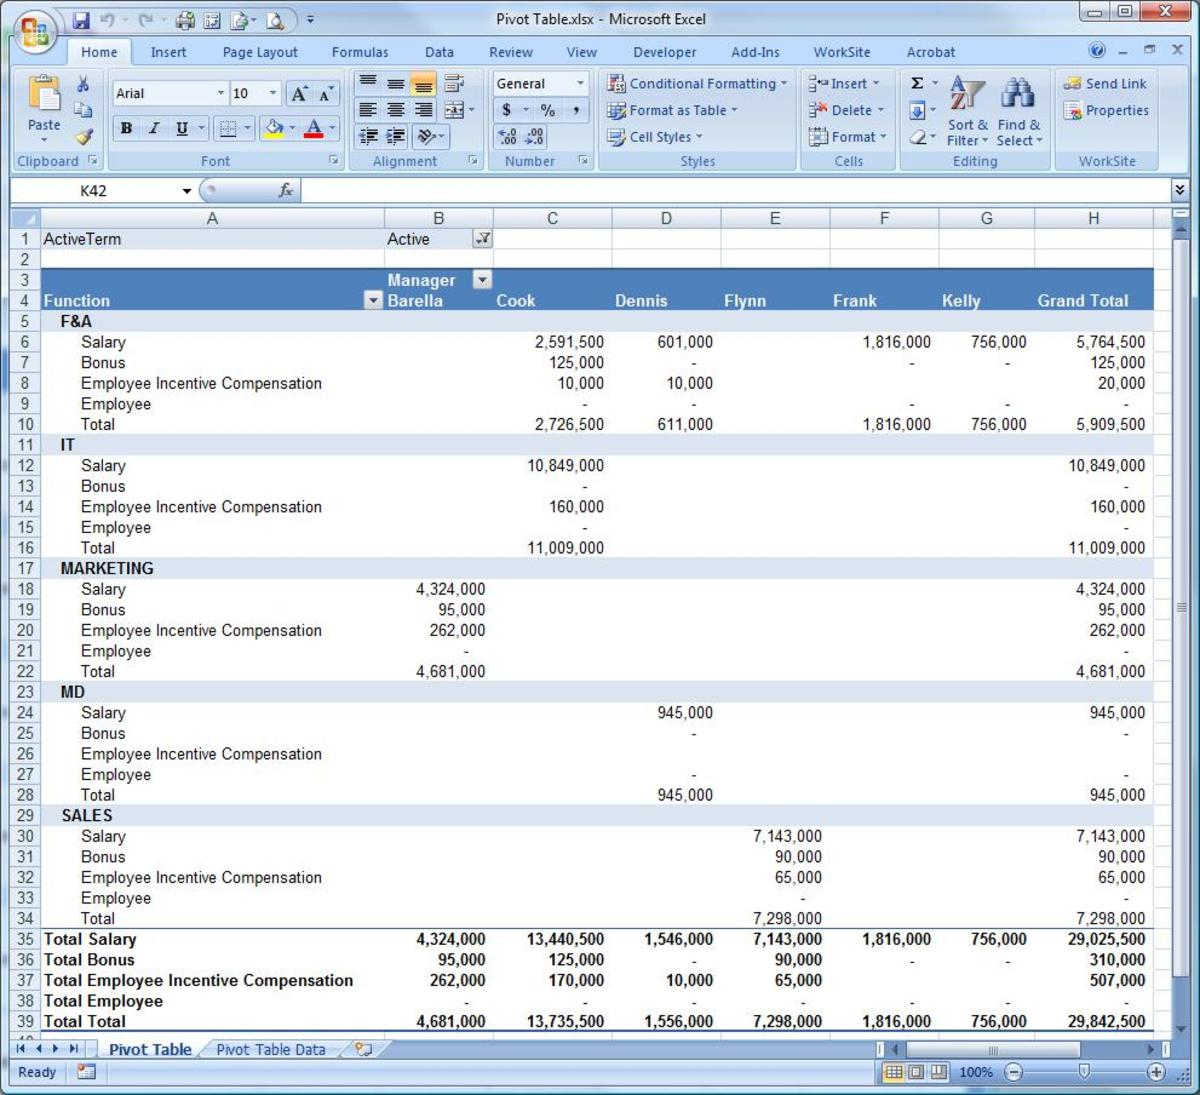 A full pivot report using the Microsoft Excel pivot table functionality.